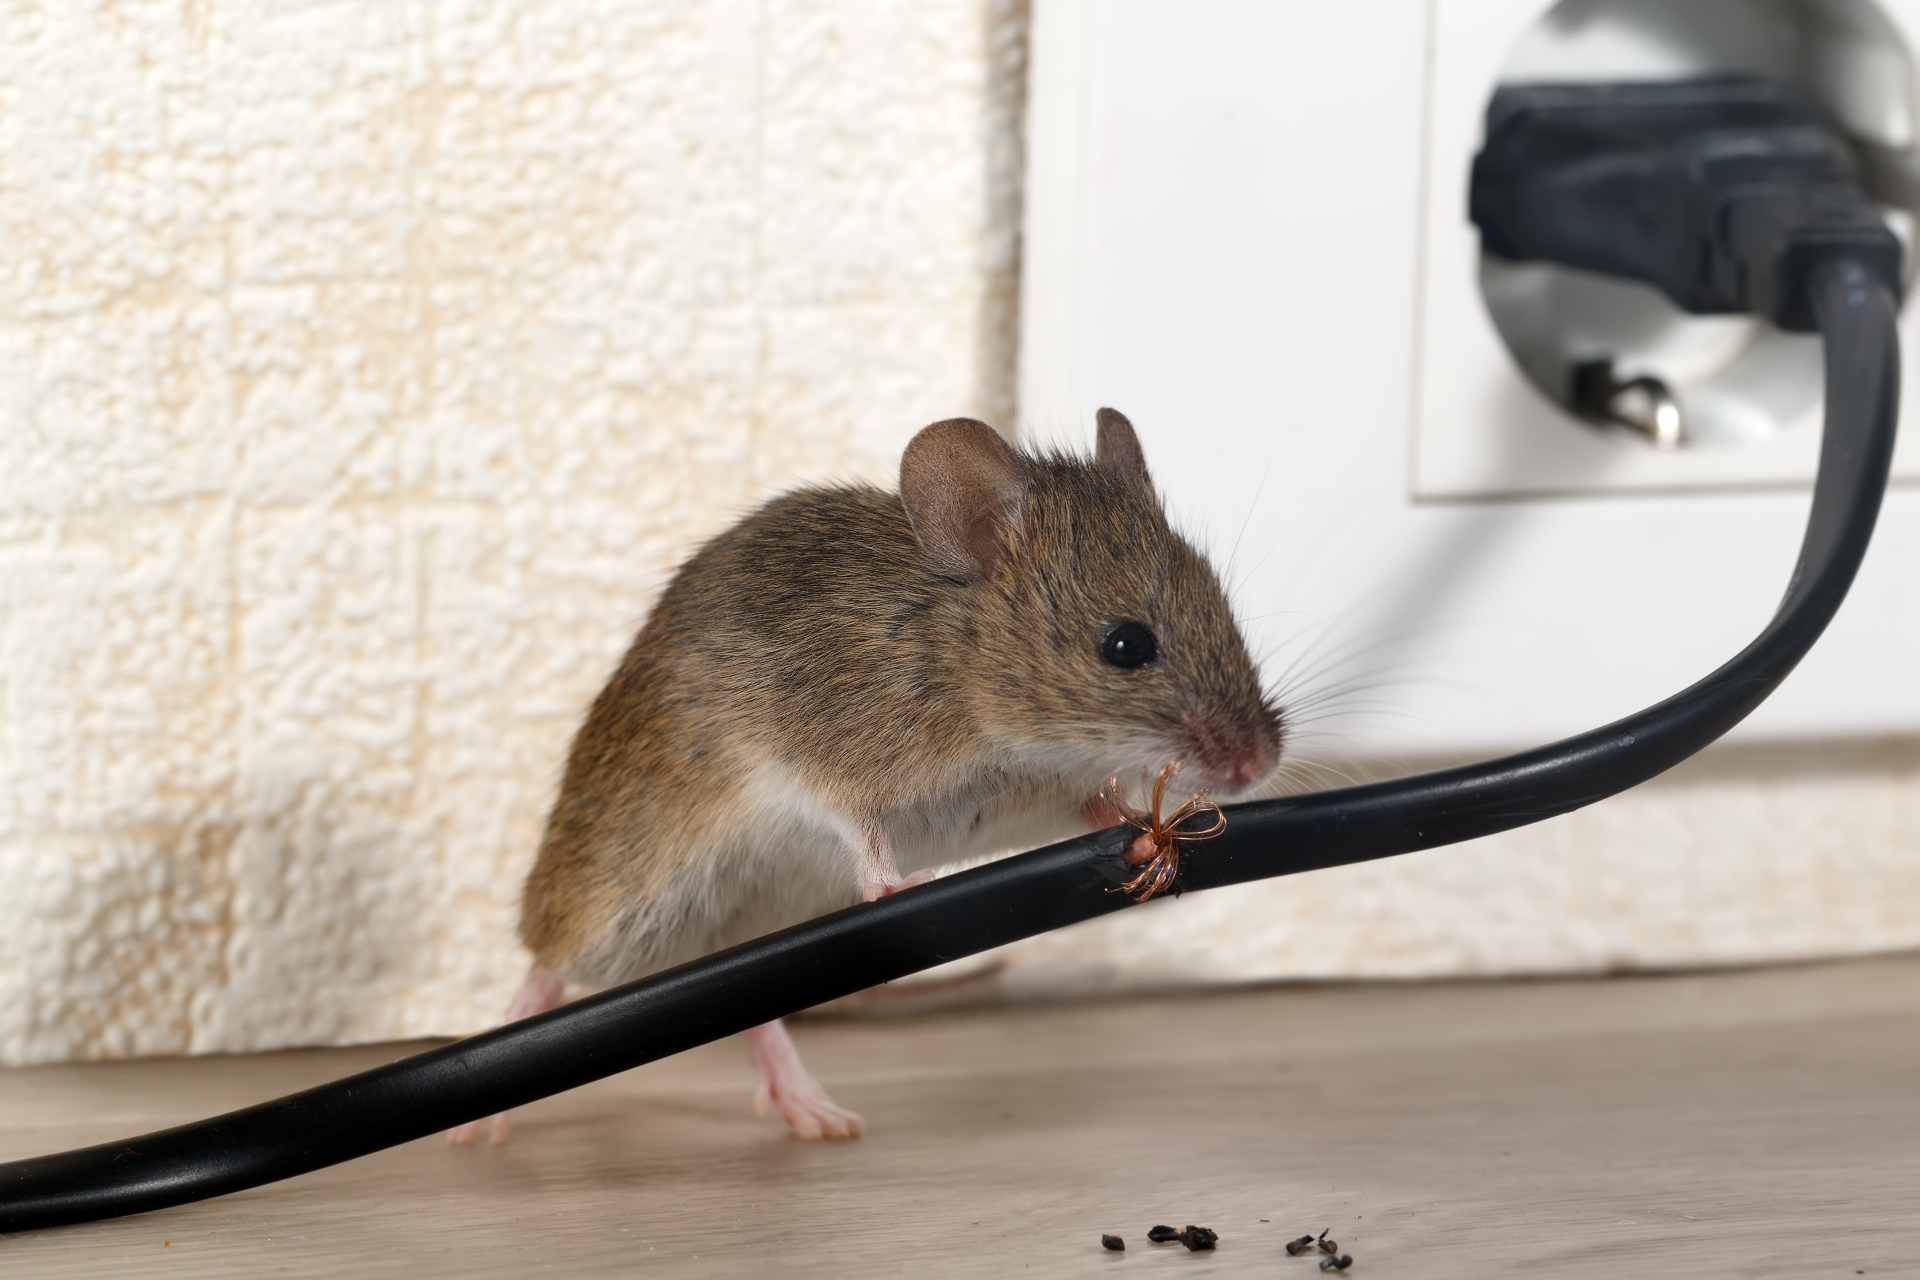 Mice Infestation, Pest Control in Harlesden, Willesden, NW10. Call Now 020 8166 9746